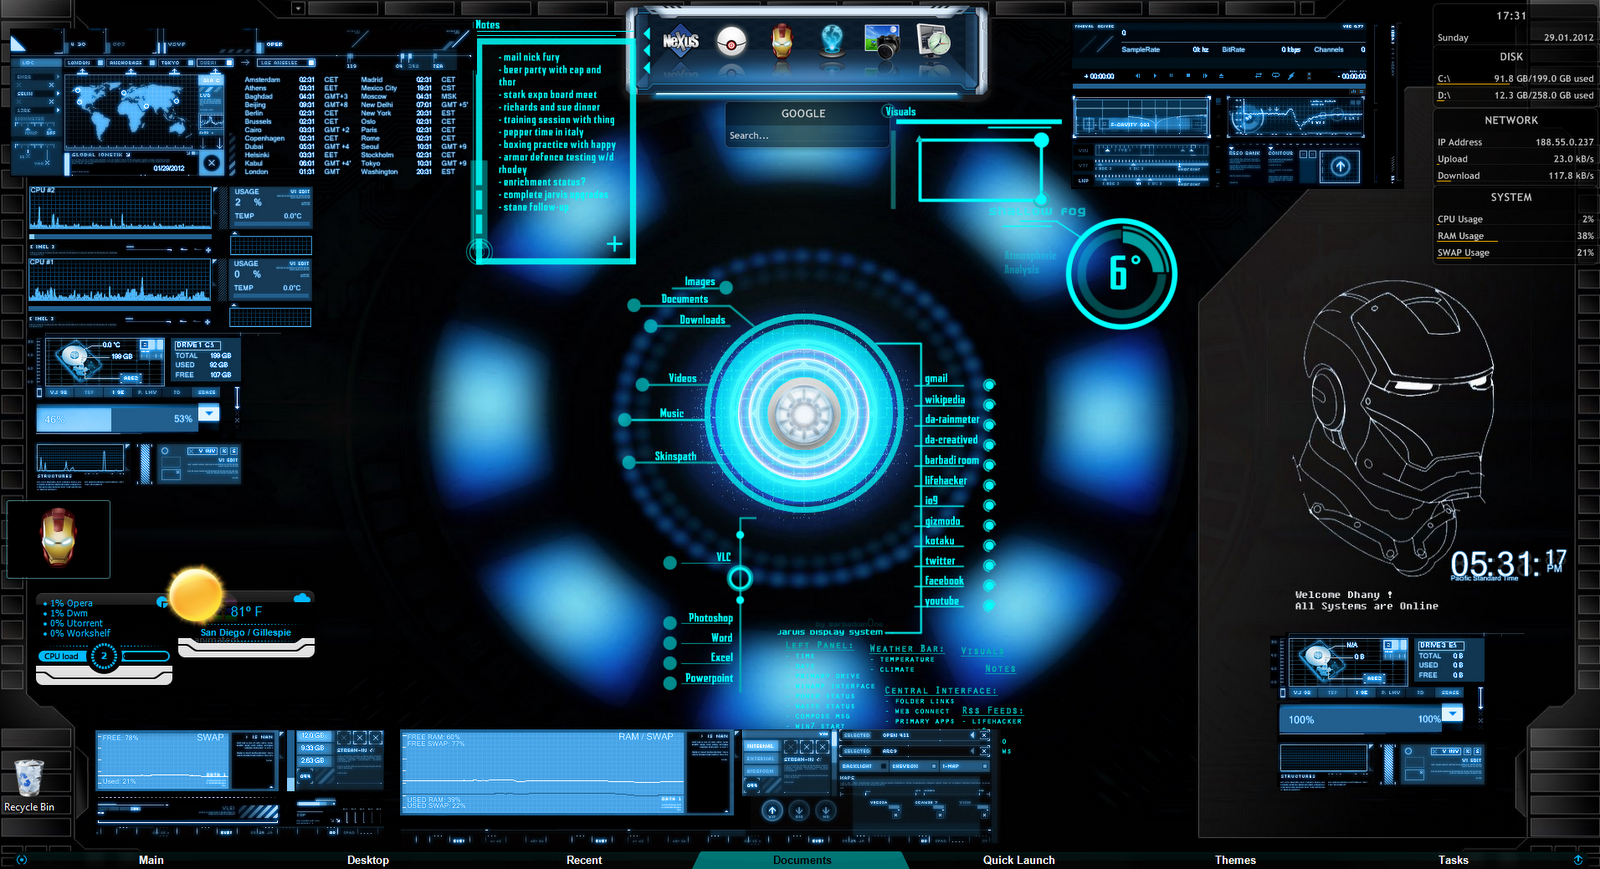 Iron Man Heads Up Display Wallpaper for Phones and Tablets 1600x869